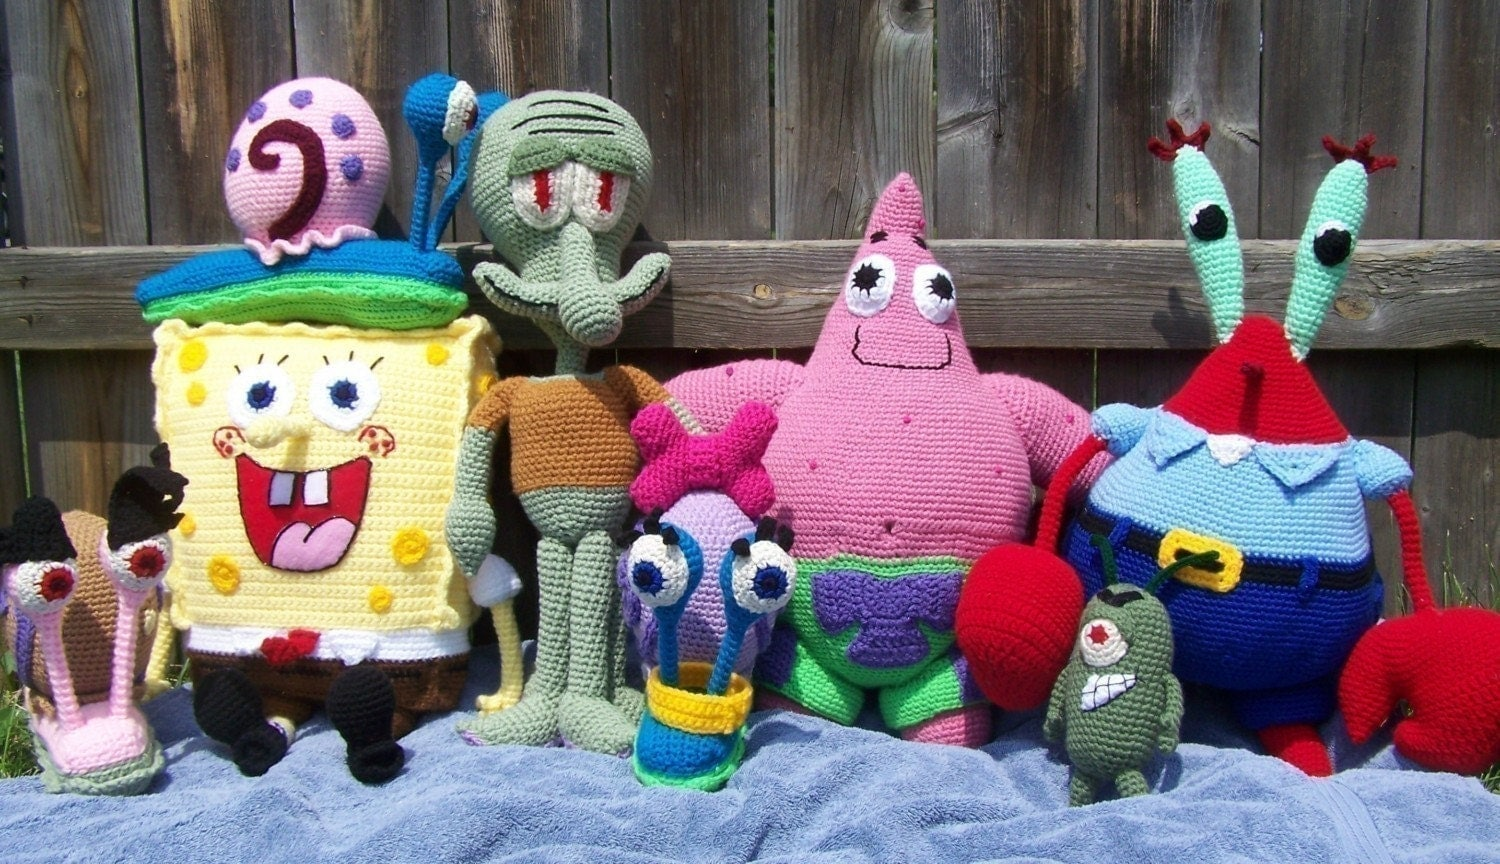 Spongebob Knitting Pattern | The Spongebob Site